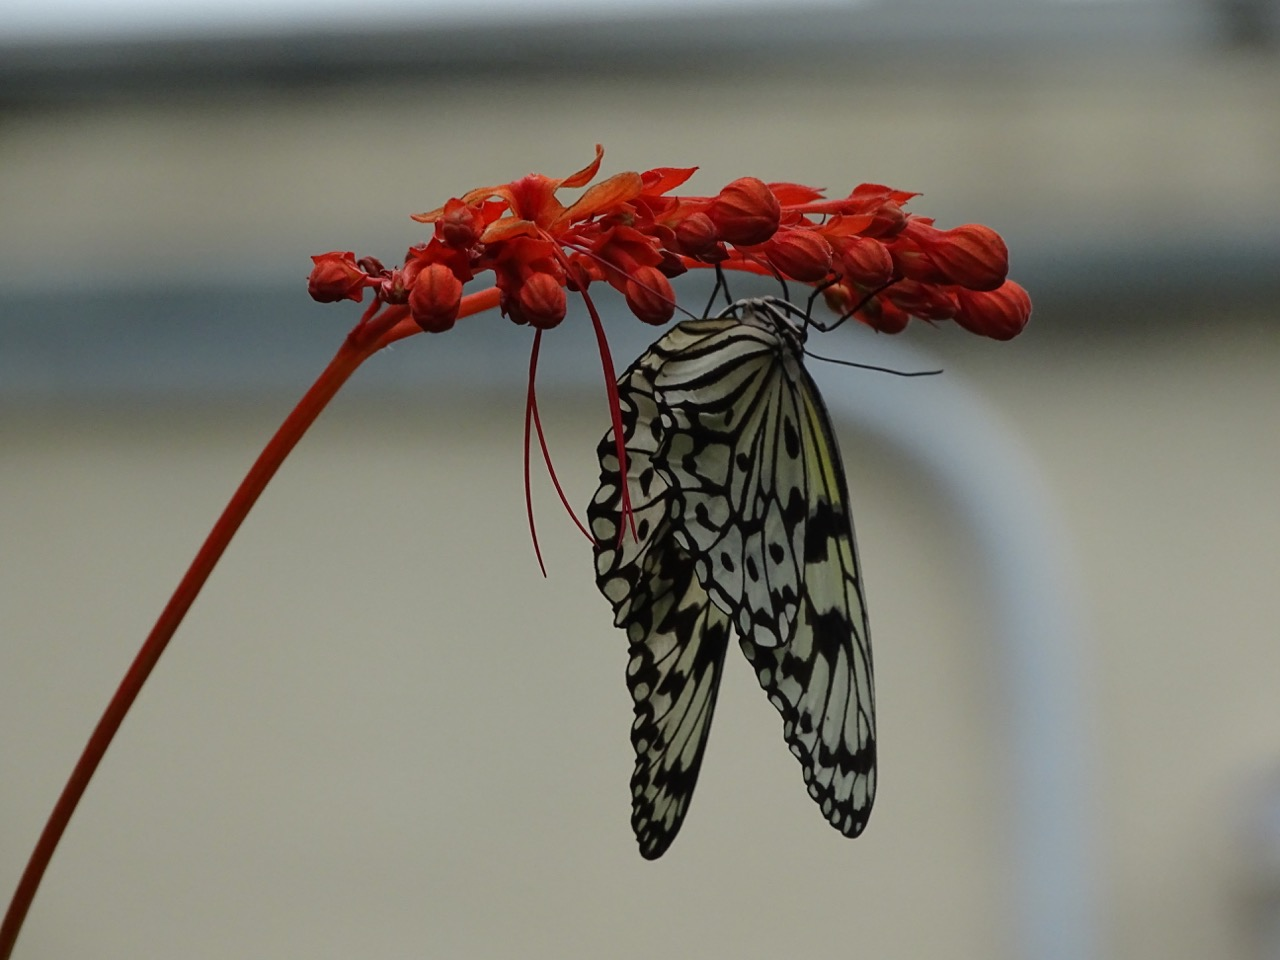 Butterfly at Taipei Zoo